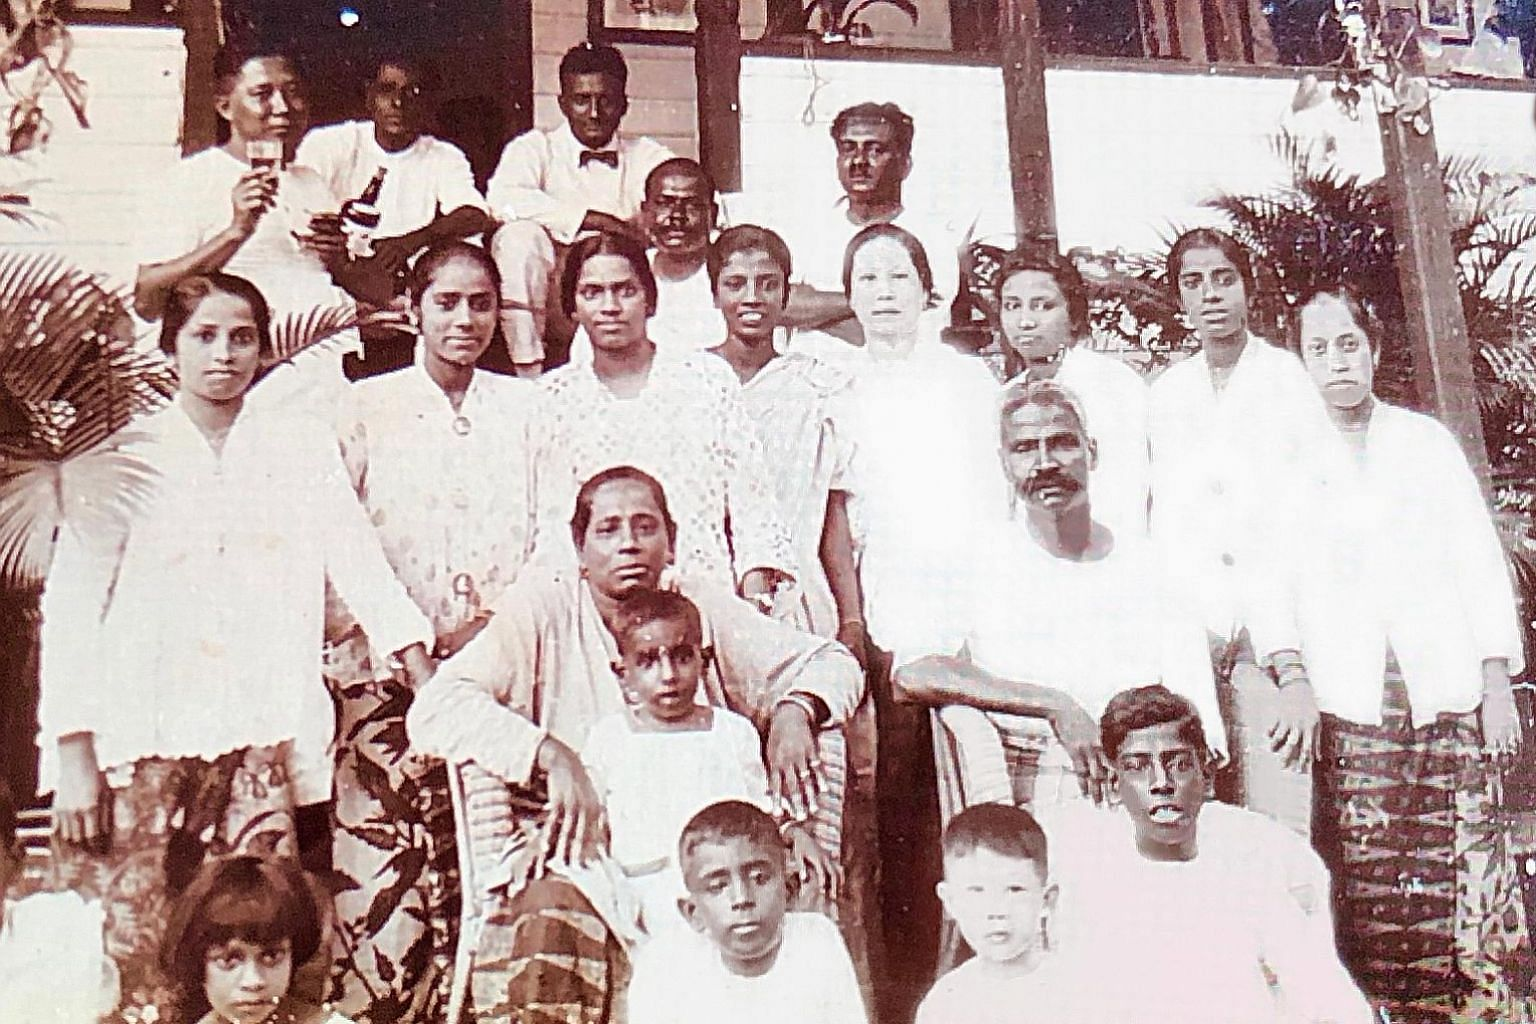 The writer's great-grandaunt Nayagi Packrisamy (seated) with her husband Thiagarajan Packrisamy. This photo, taken some time in the early 1900s at the family's summer house near the beach, includes friends, neighbours and family members, such as the